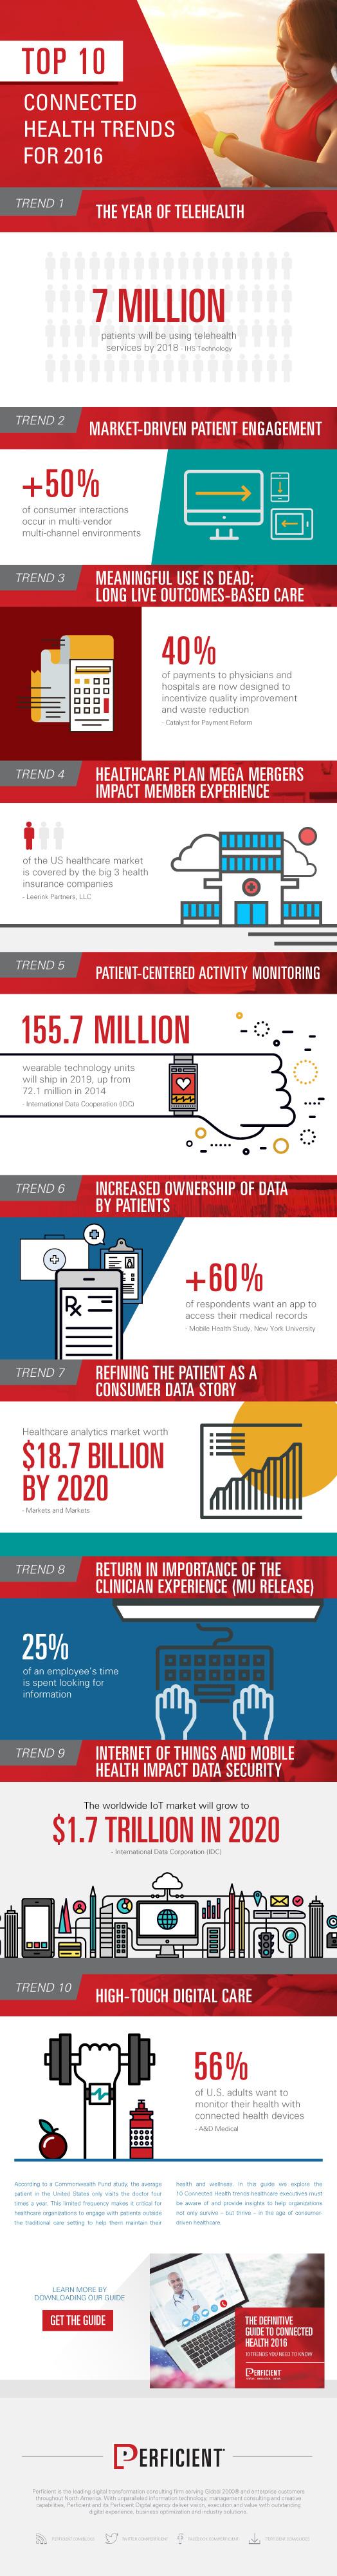 webready_connected_health_infographic_5